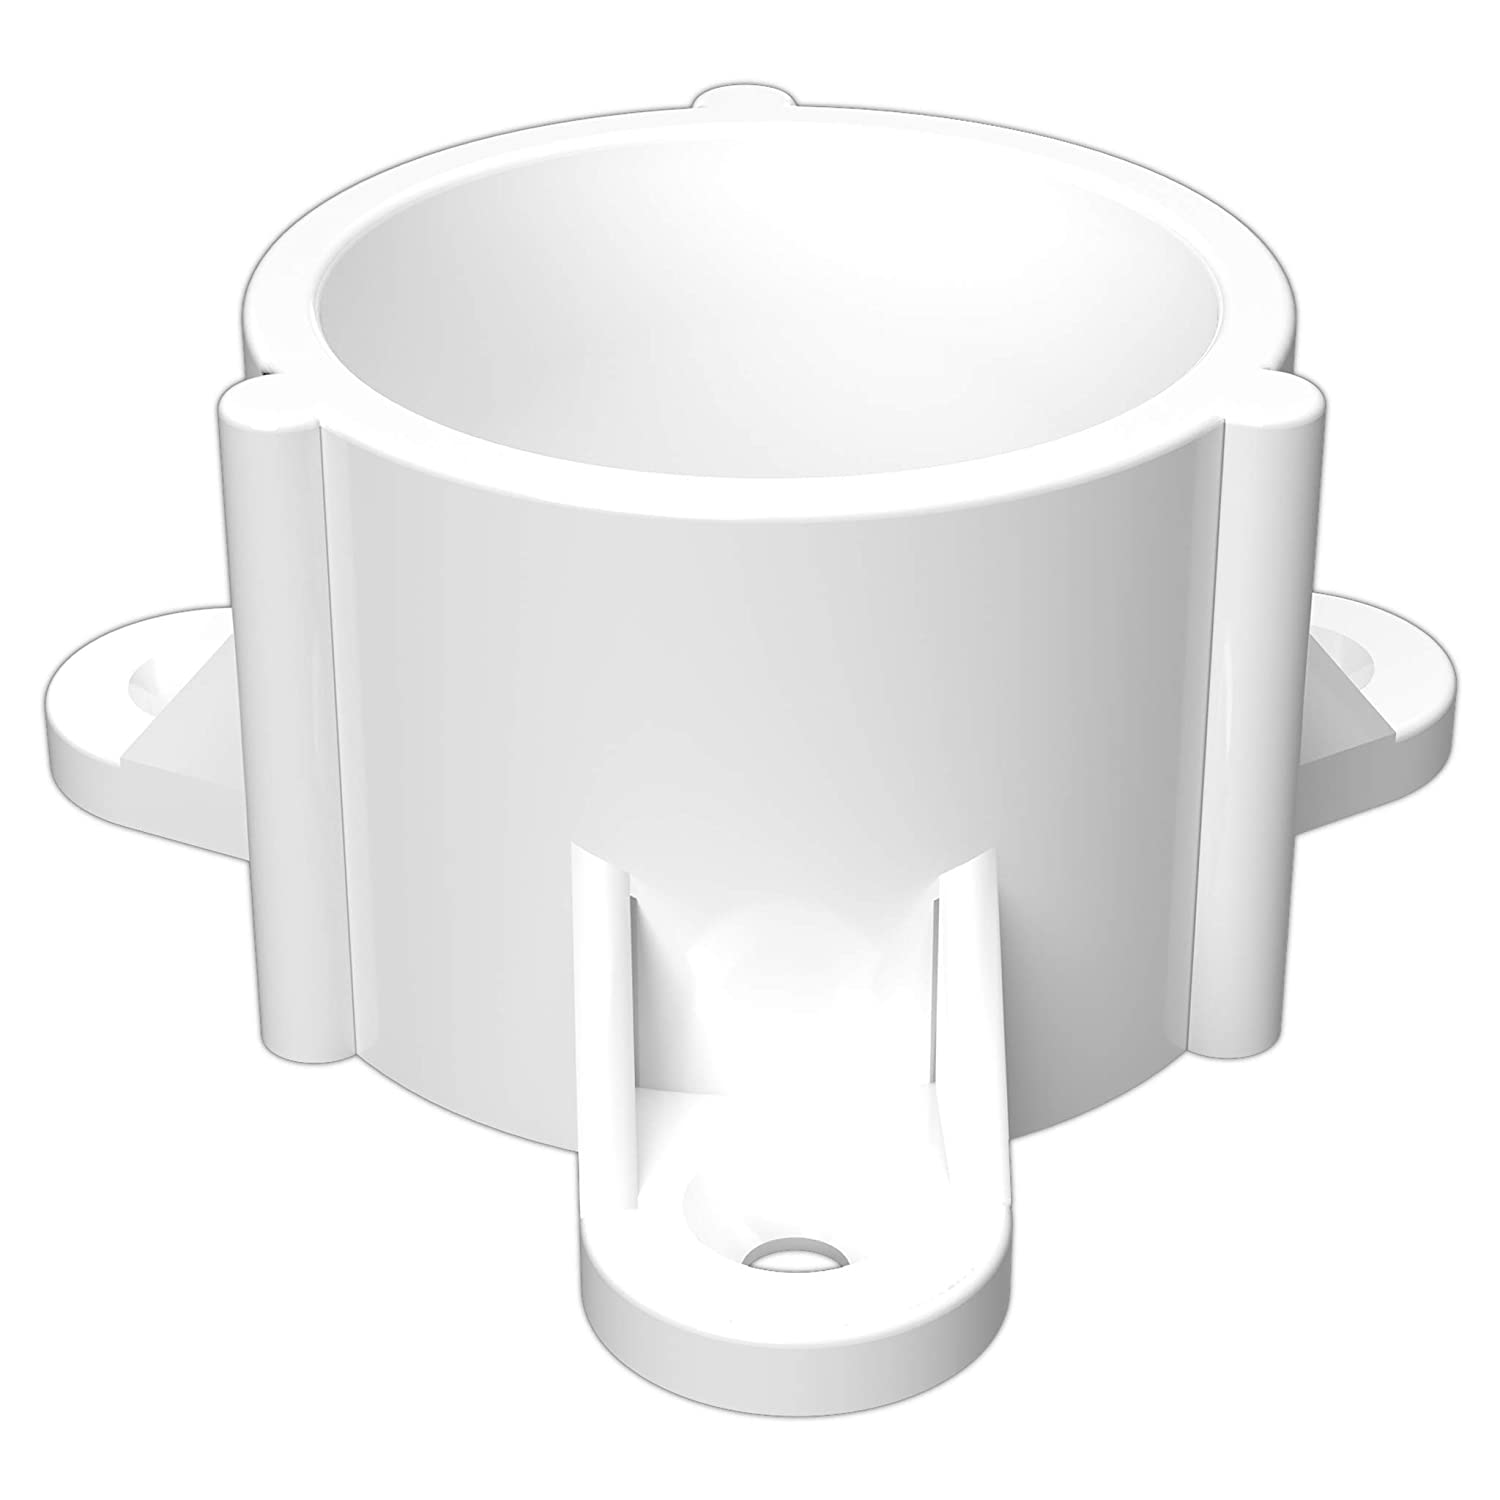 "FORMUFIT F112ECT-WH-10 PVC Table Cap, Furniture Grade, 1-1/2"" Size, White (Pack of 10)"